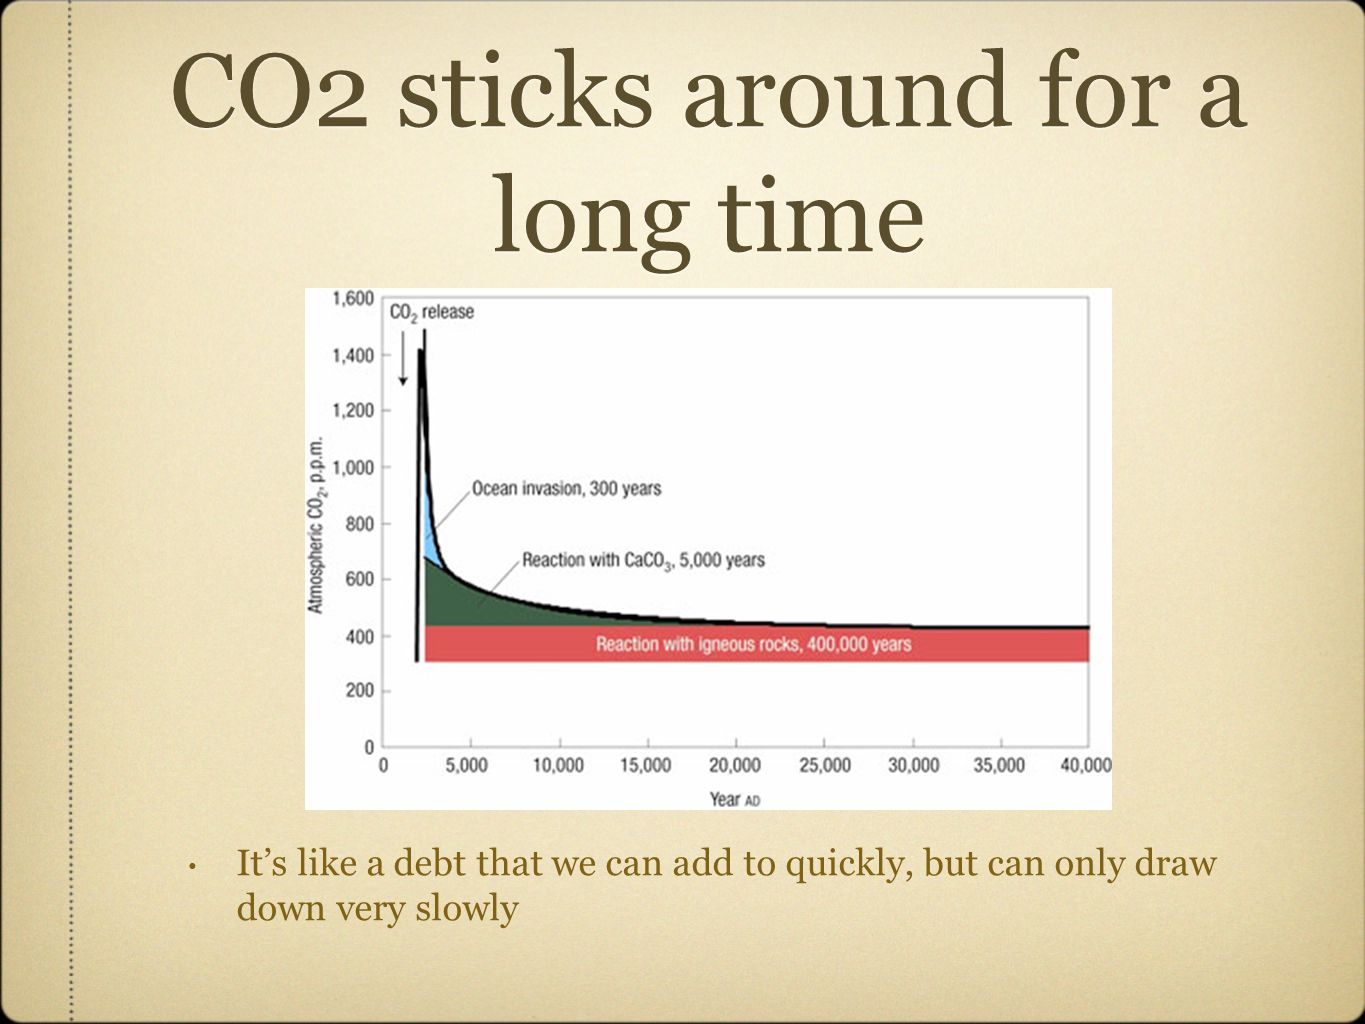 CO2 sticks around for a long time It's like a debt that we can add to quickly, but can only draw down very slowly